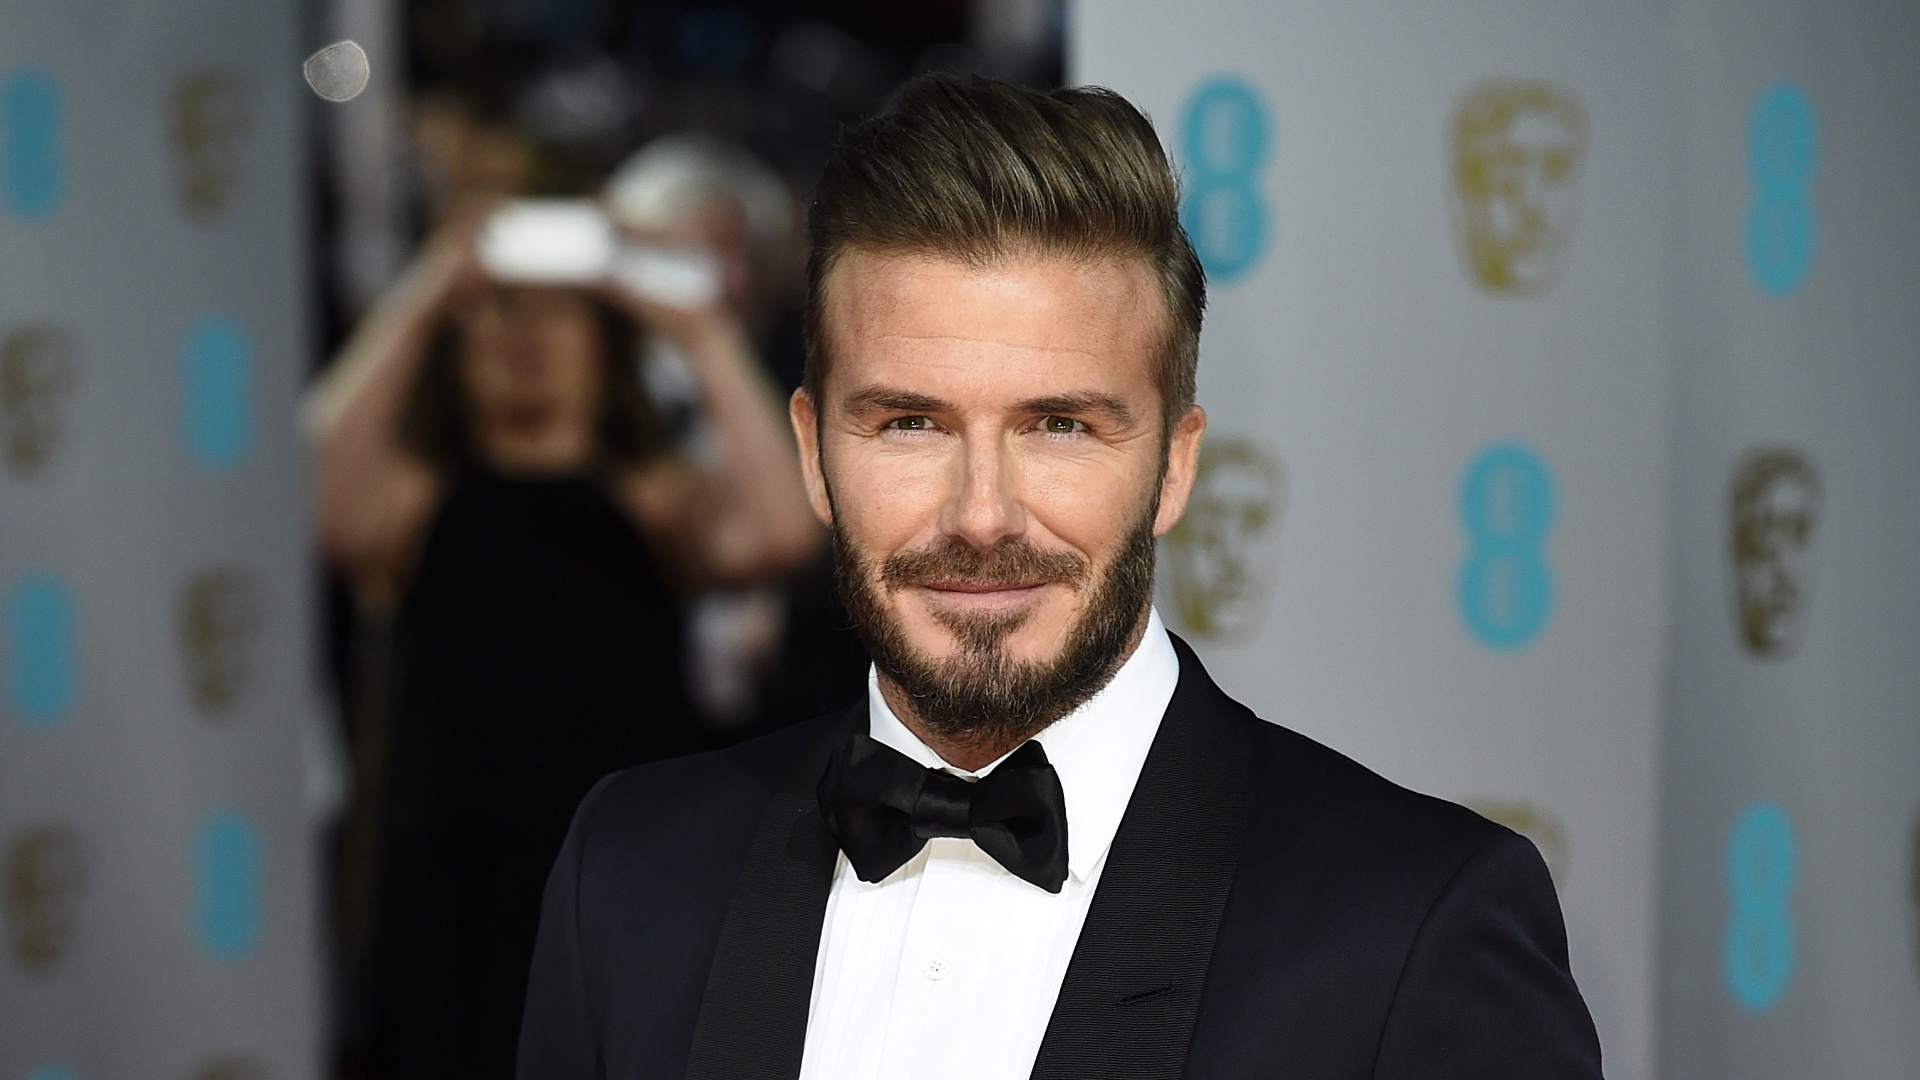 Former England and LA Galaxy footballer David Beckham graced the BAFTA Awards infamous red carpet for the first time last weekend (February 8) and certainly ...